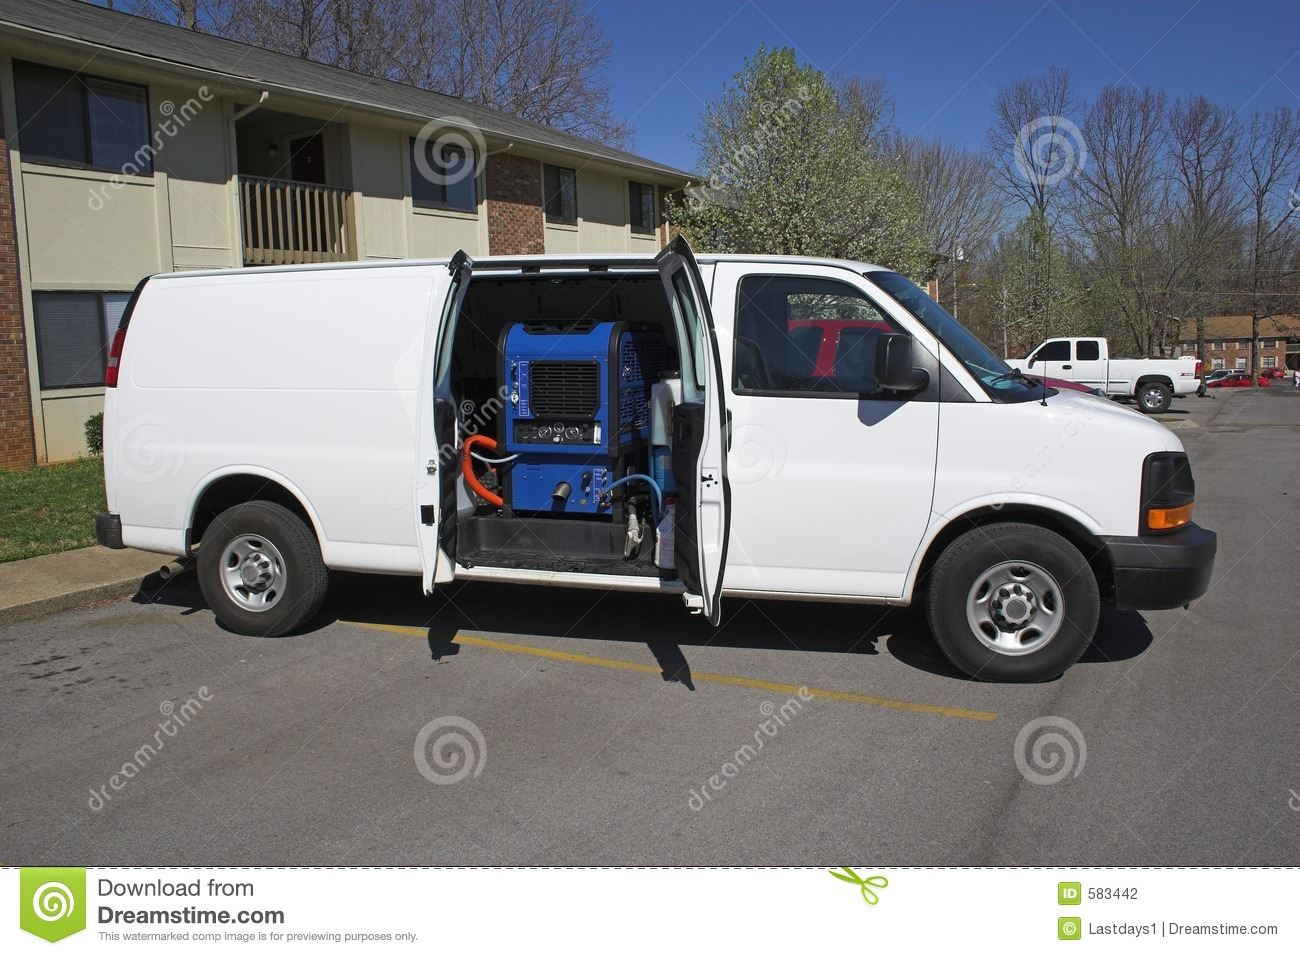 Carpet Cleaning Van 1 Stock Photography Image 583442